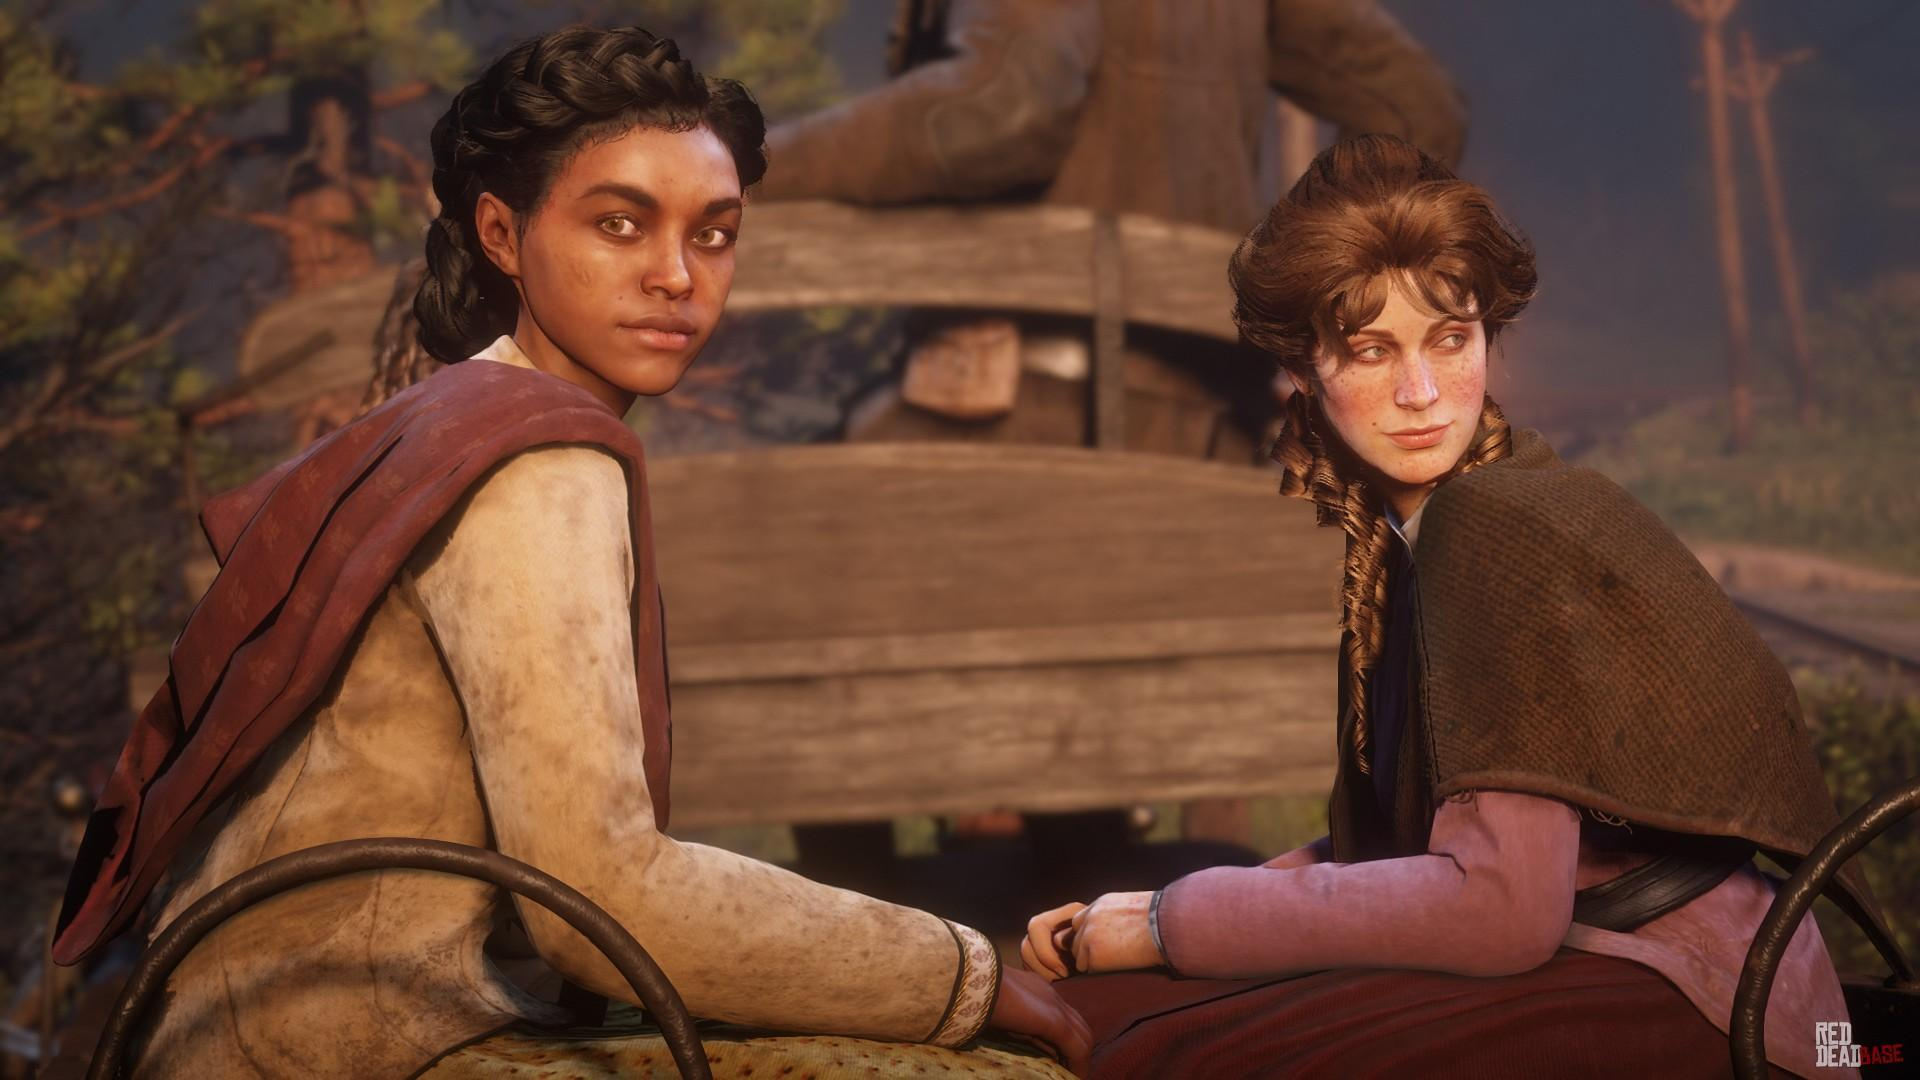 Mary-Beth Gaskill - Red Dead Redemption 2 Characters - Red